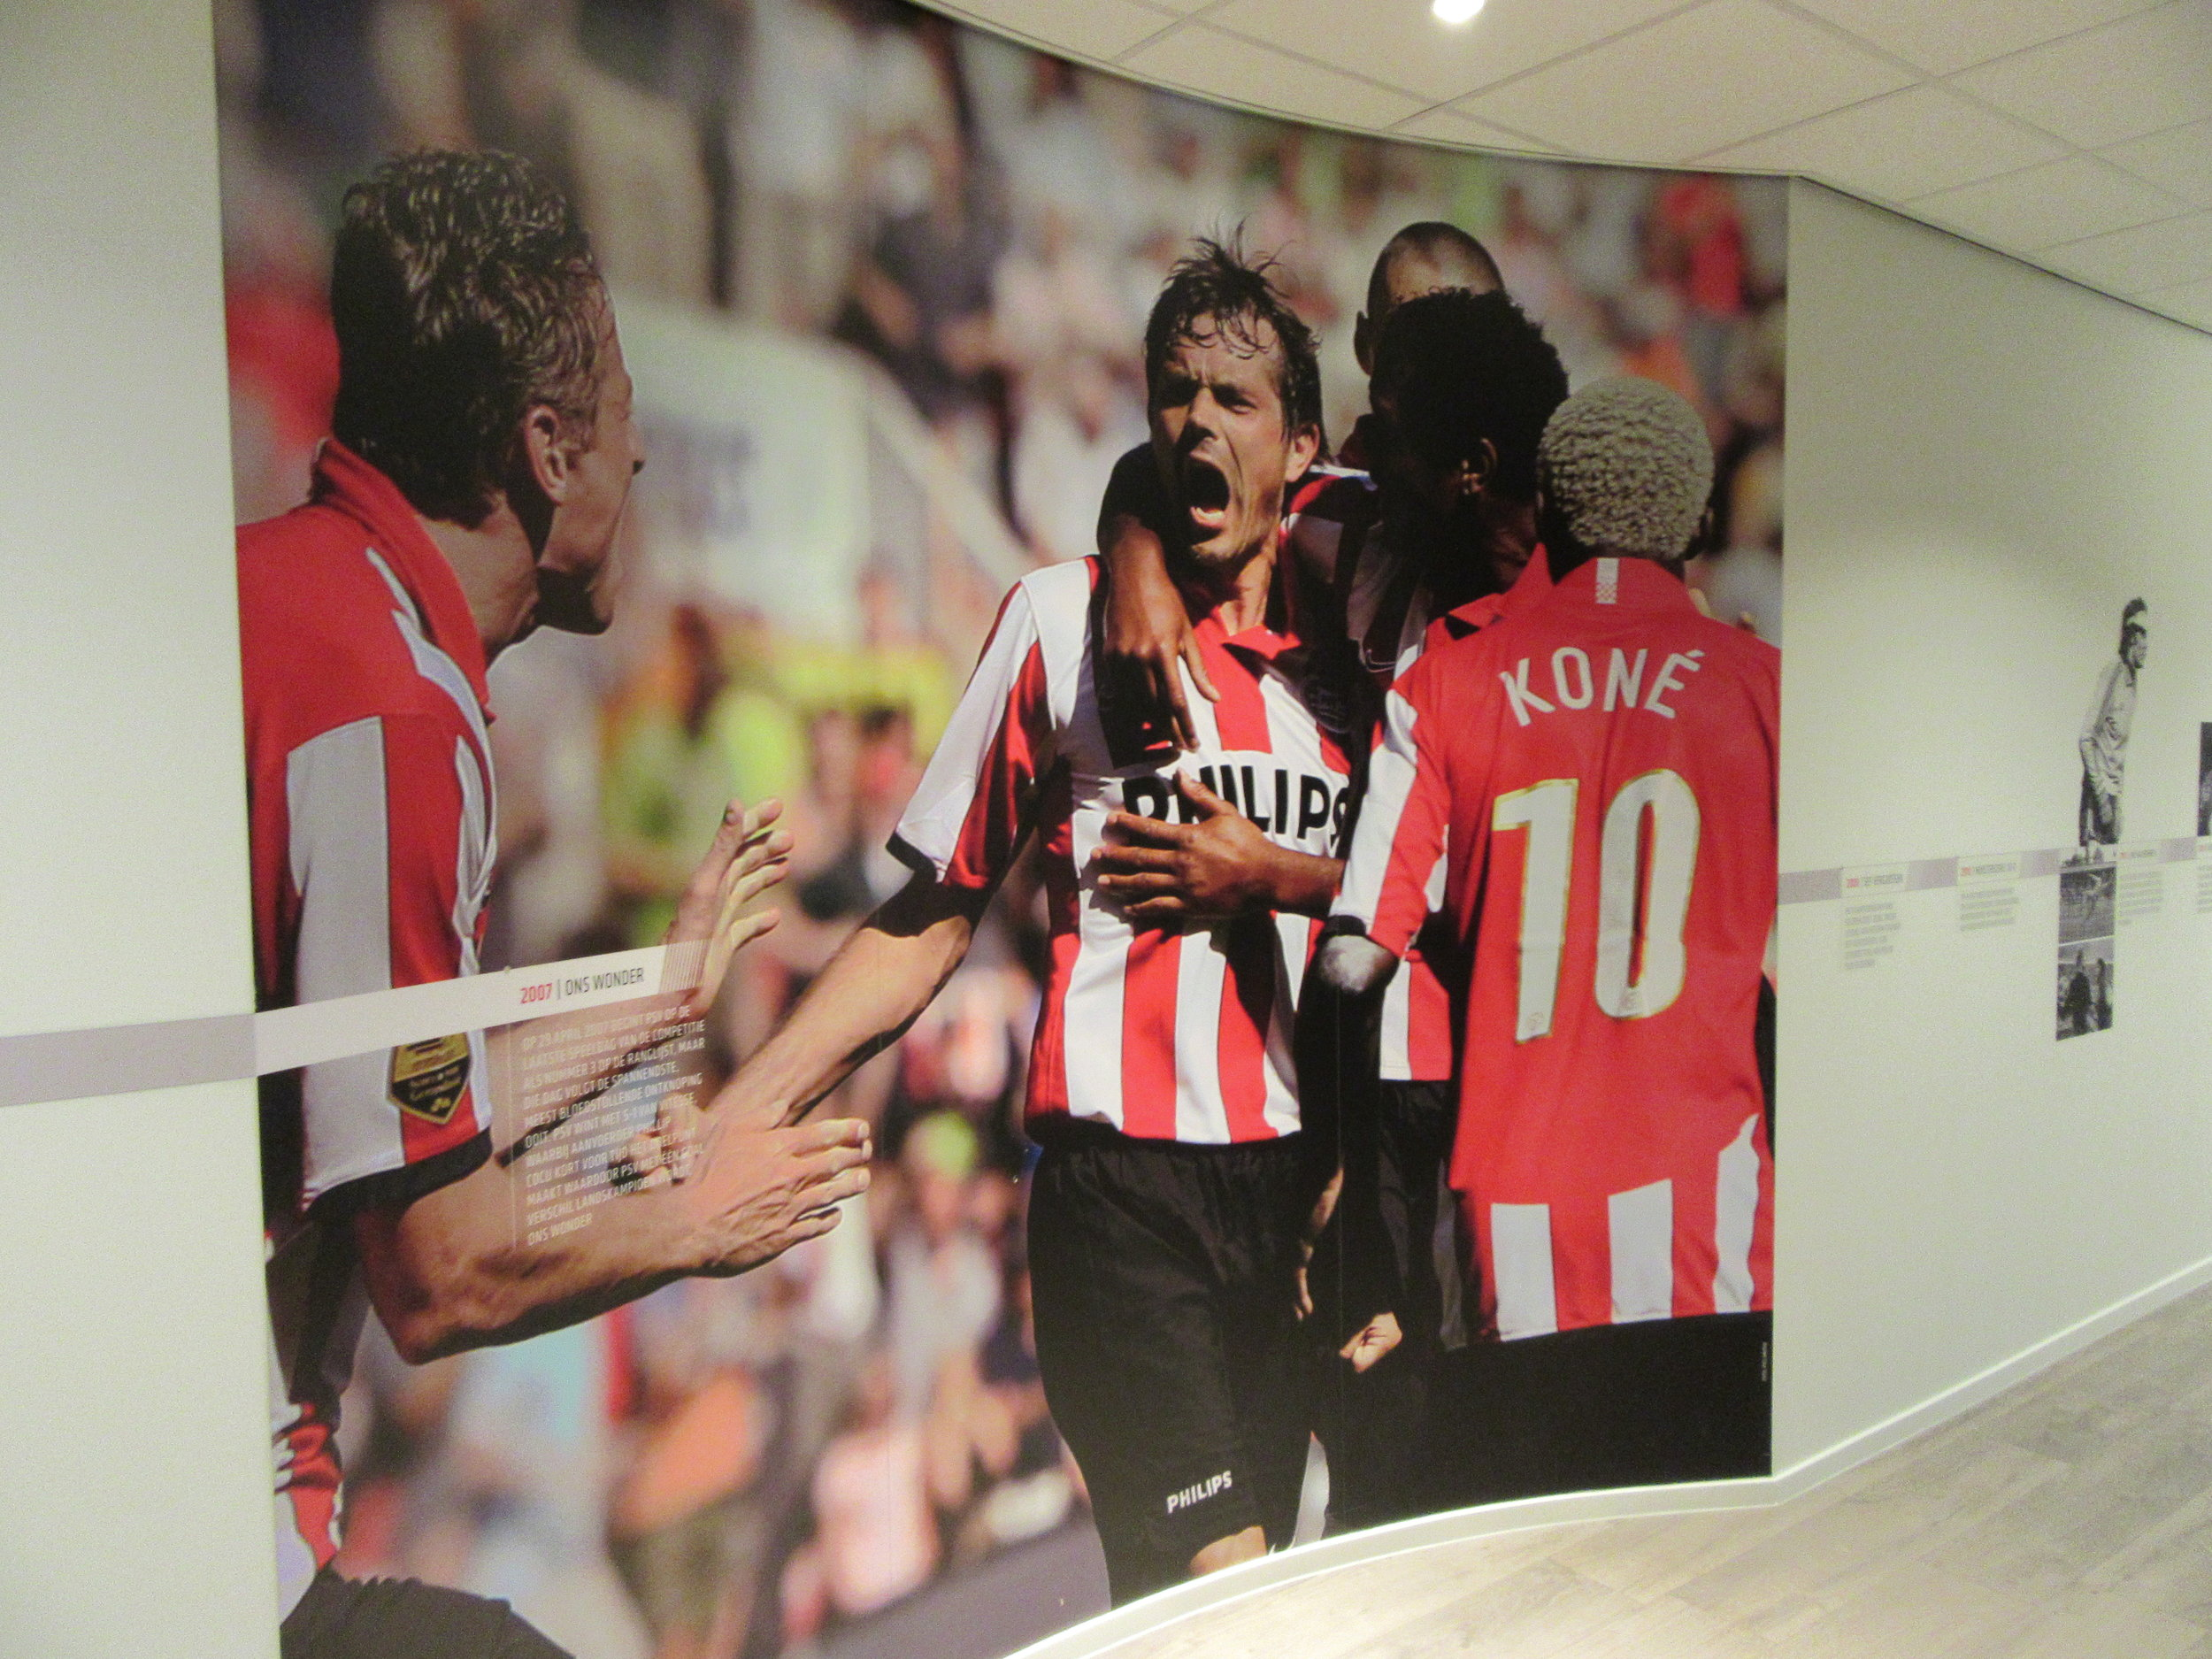 Arouna Koné celebrates with his teammates after Phillip Cocu scores in a 5-1 win over Vitesse Arnhem on the last day of the 2006-07 league campaign. PSV won the Eredivise title on goal difference, and this picture is displayed on the wall outside the press room at Philips Stadion.